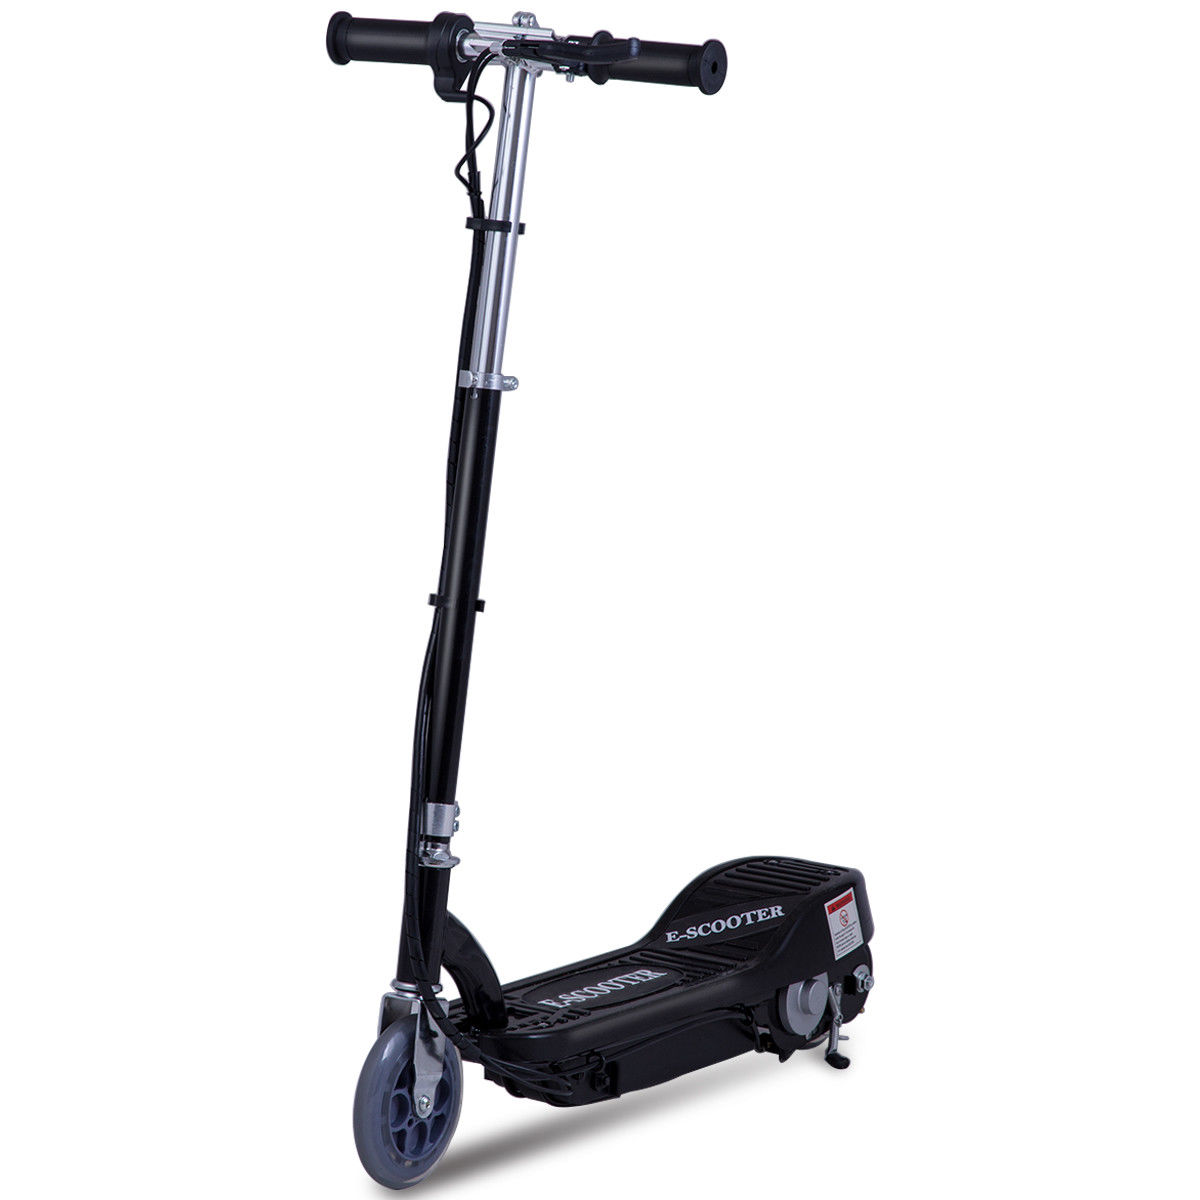 Gymax Foldable Rechargeable Electric Scooter Motorized Ride On Outdoor For Teens Black by Gymax